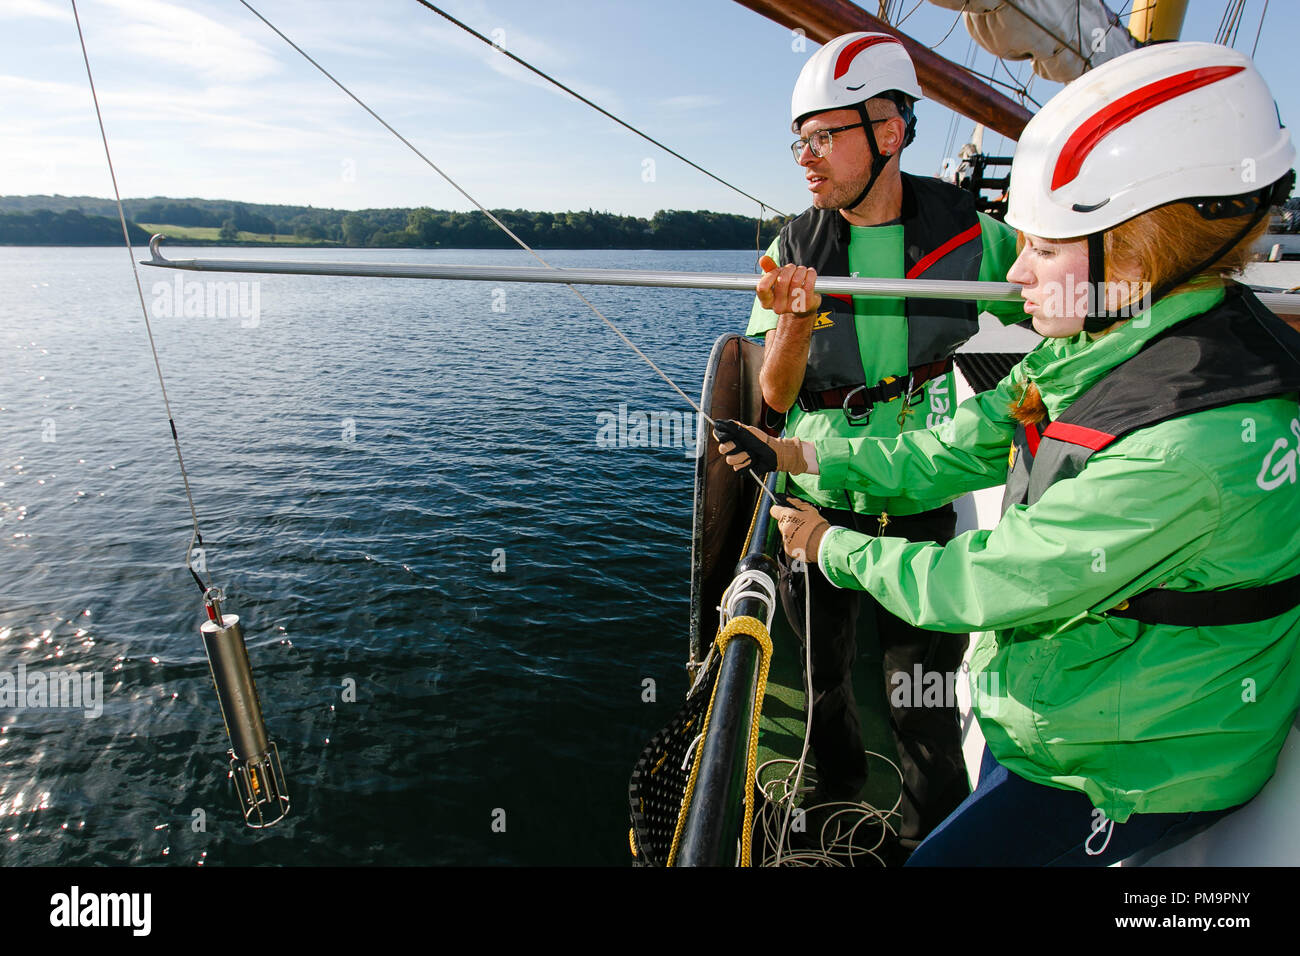 18 September 2018, Schleswig-Holstein, Gluecksburg: Agricultural biologist Dirk Zimmermann (l) and student Daniela Herrmann let a CTD probe into the water to check the salinity and temperature. At the start of the Greenpeace Marine Conservation Tour, scientists in the Flensburg Fjord took water samples and examined them for fertiliser contamination. Photo: Frank Molter/dpa - Stock Image